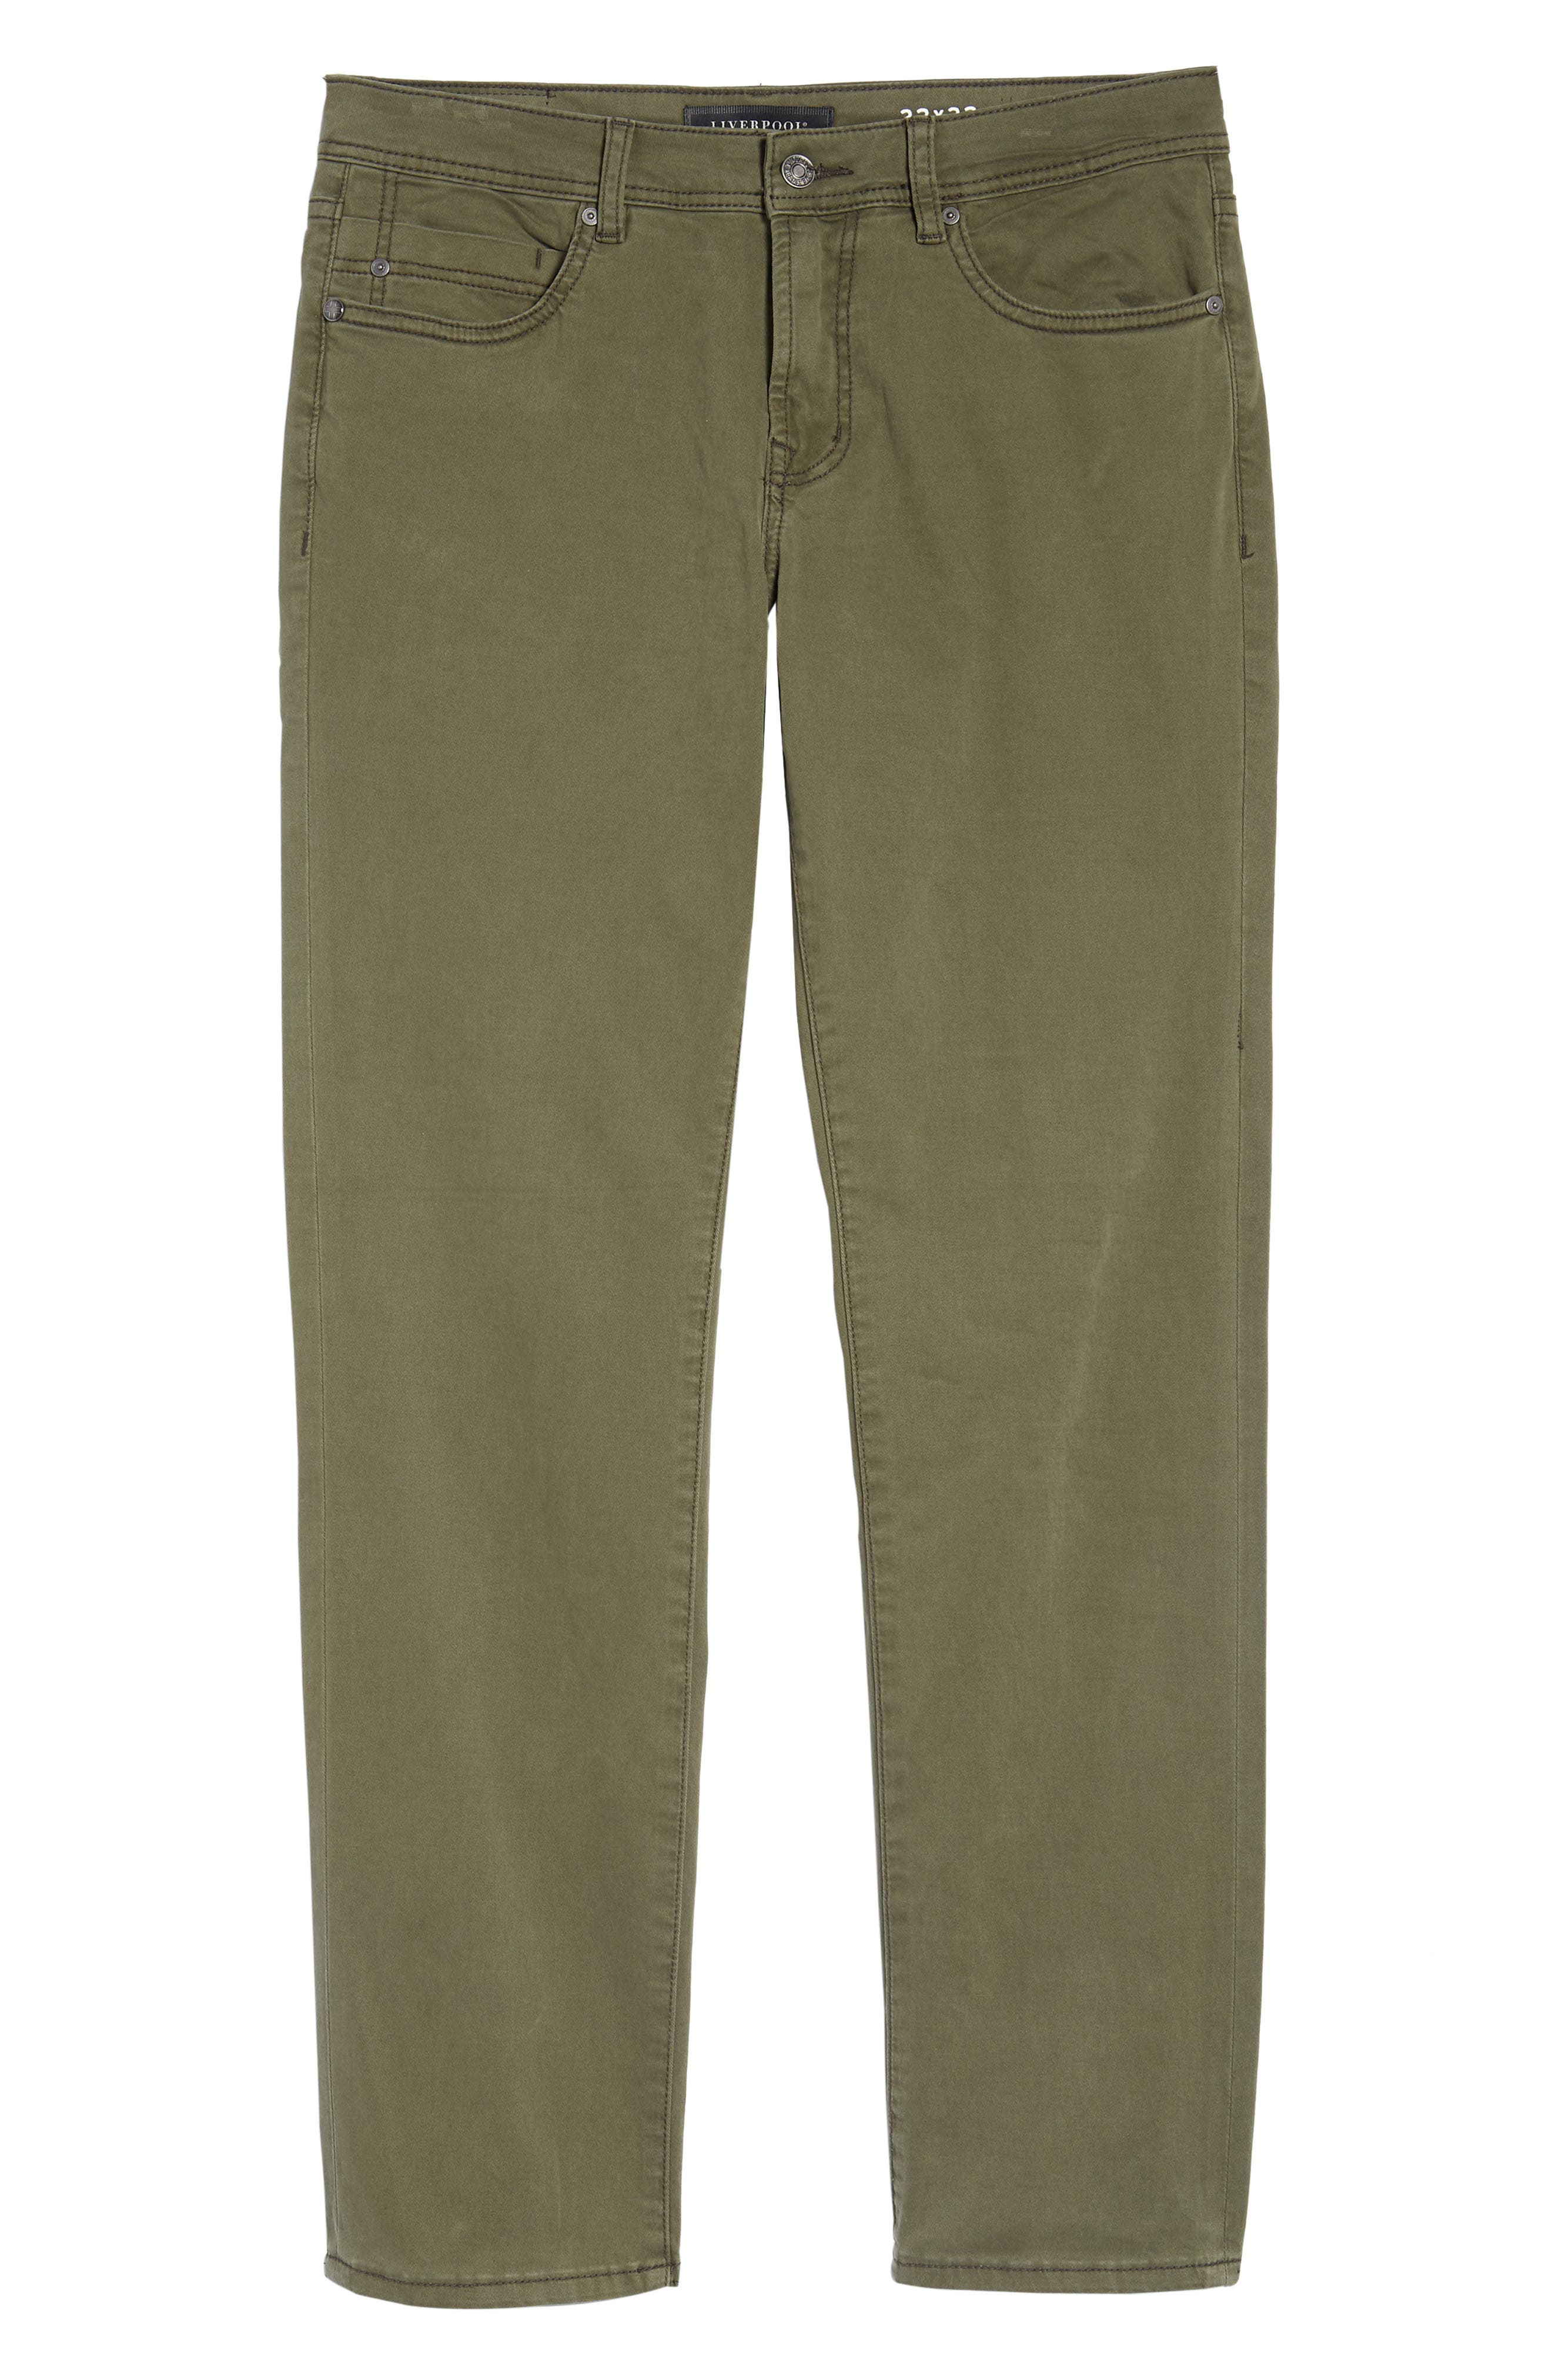 Jeans Co. Regent Relaxed Fit Jeans,                             Alternate thumbnail 6, color,                             OLIVE NIGHT